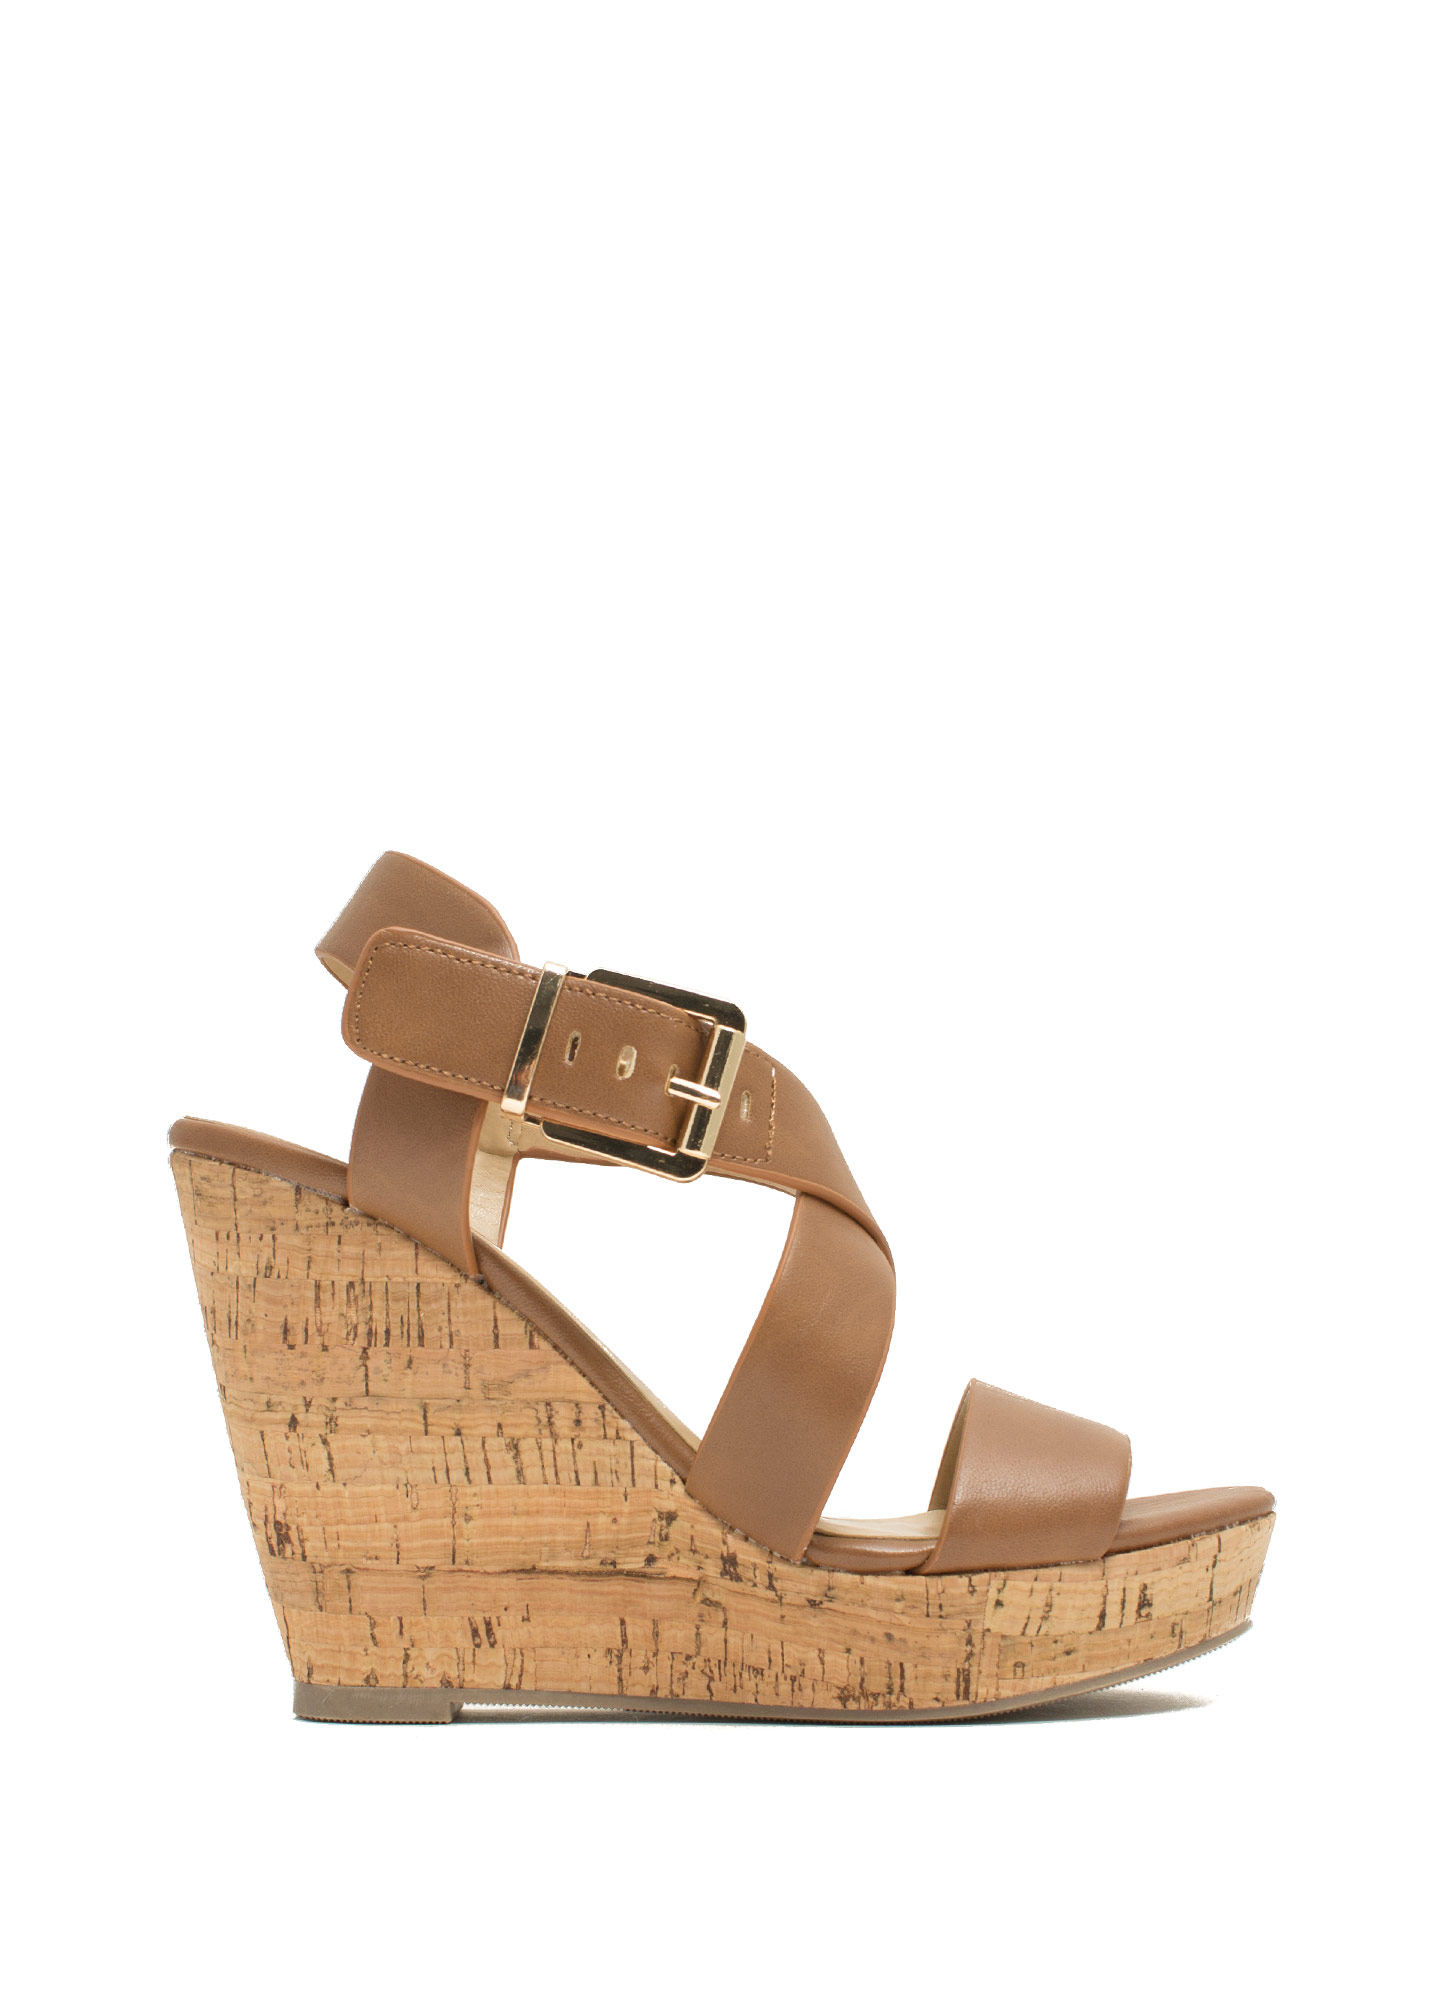 Crisscross Ur Heart Faux Leather Wedges TAN